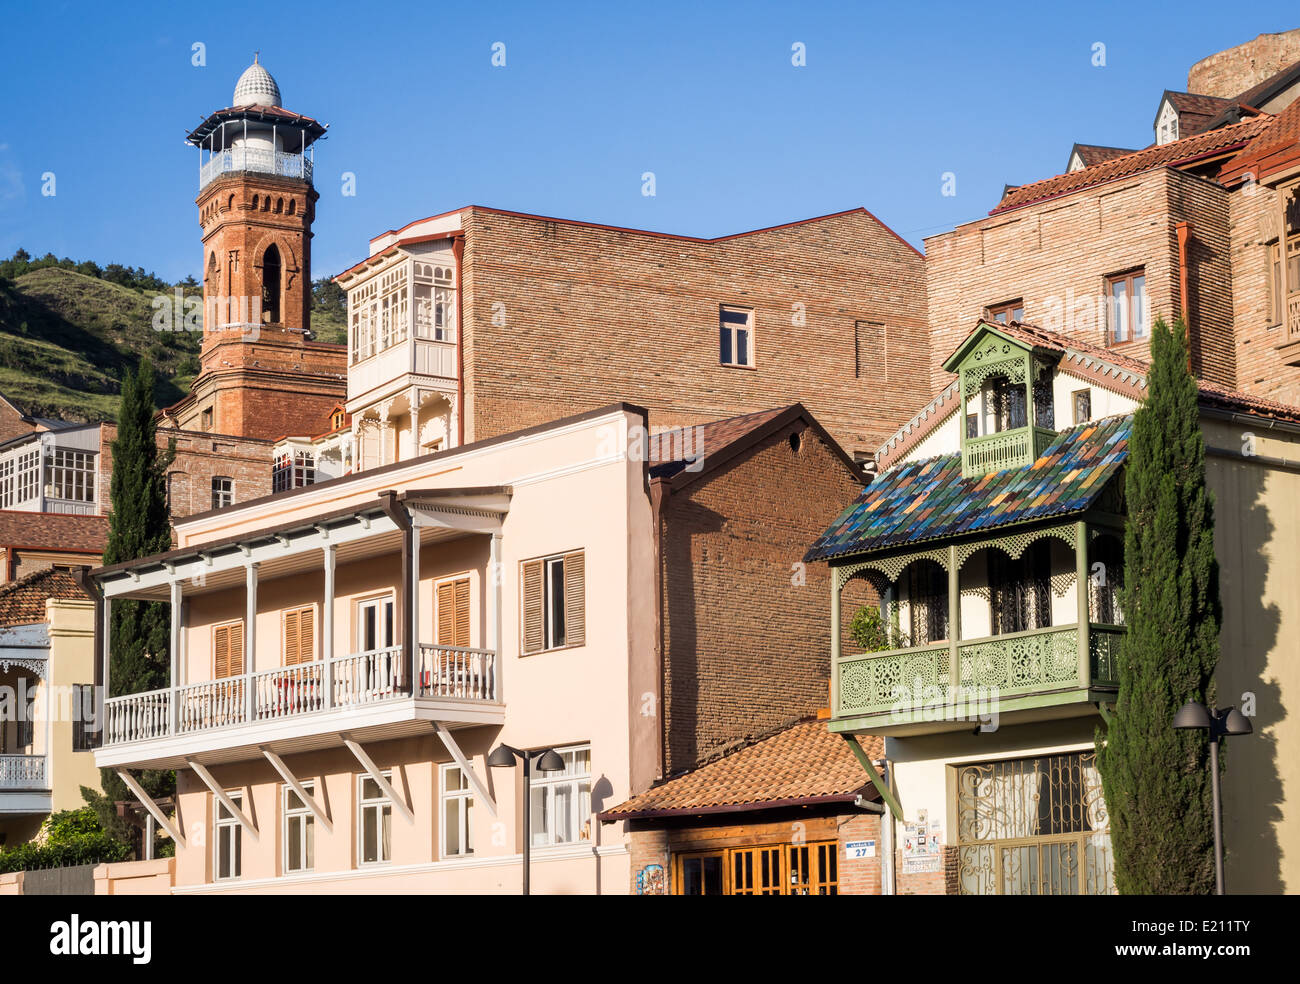 Architecture of the old town in Tbilisi, Georgia, close to the sulphur baths. Stock Photo